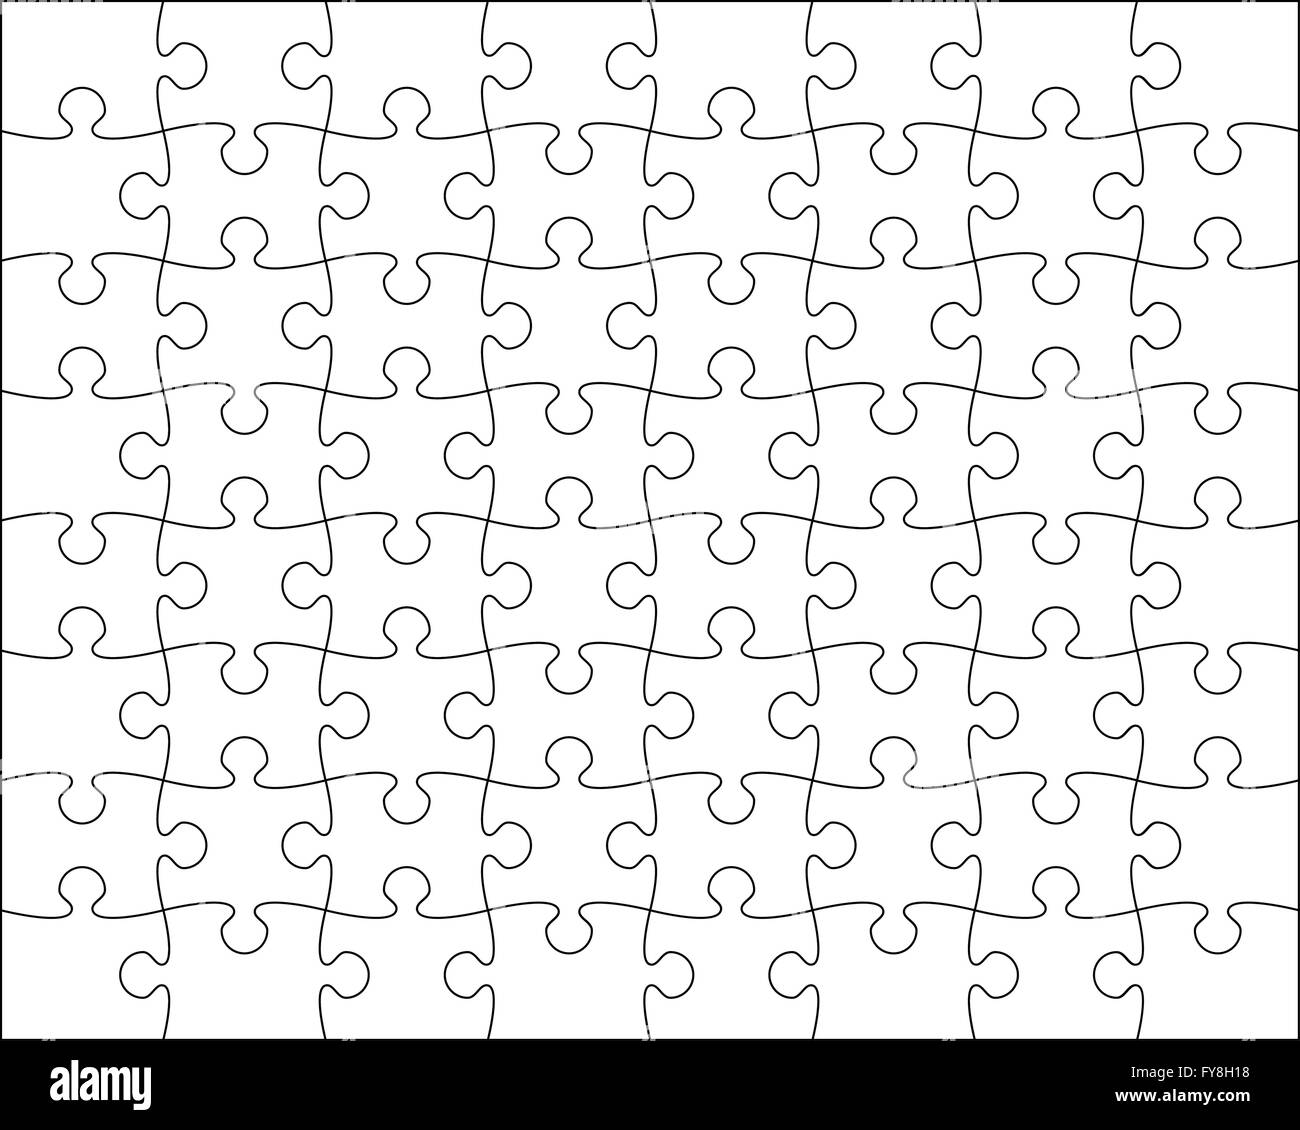 Jigsaw Puzzle Template Editable Blend Vector Illustration